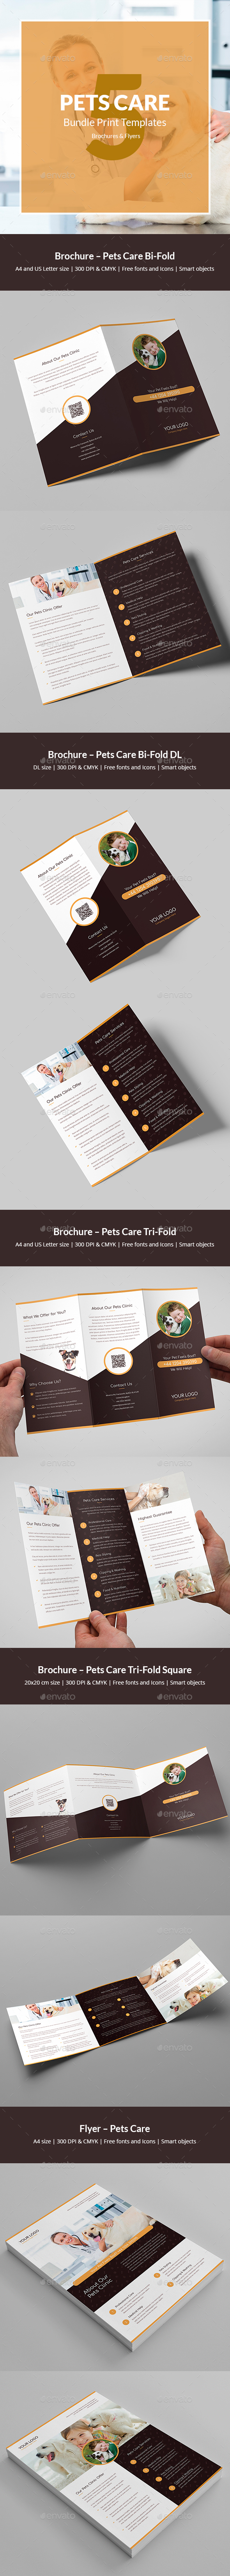 Pets Care – Bundle Print Templates 5 in 1 - Informational Brochures